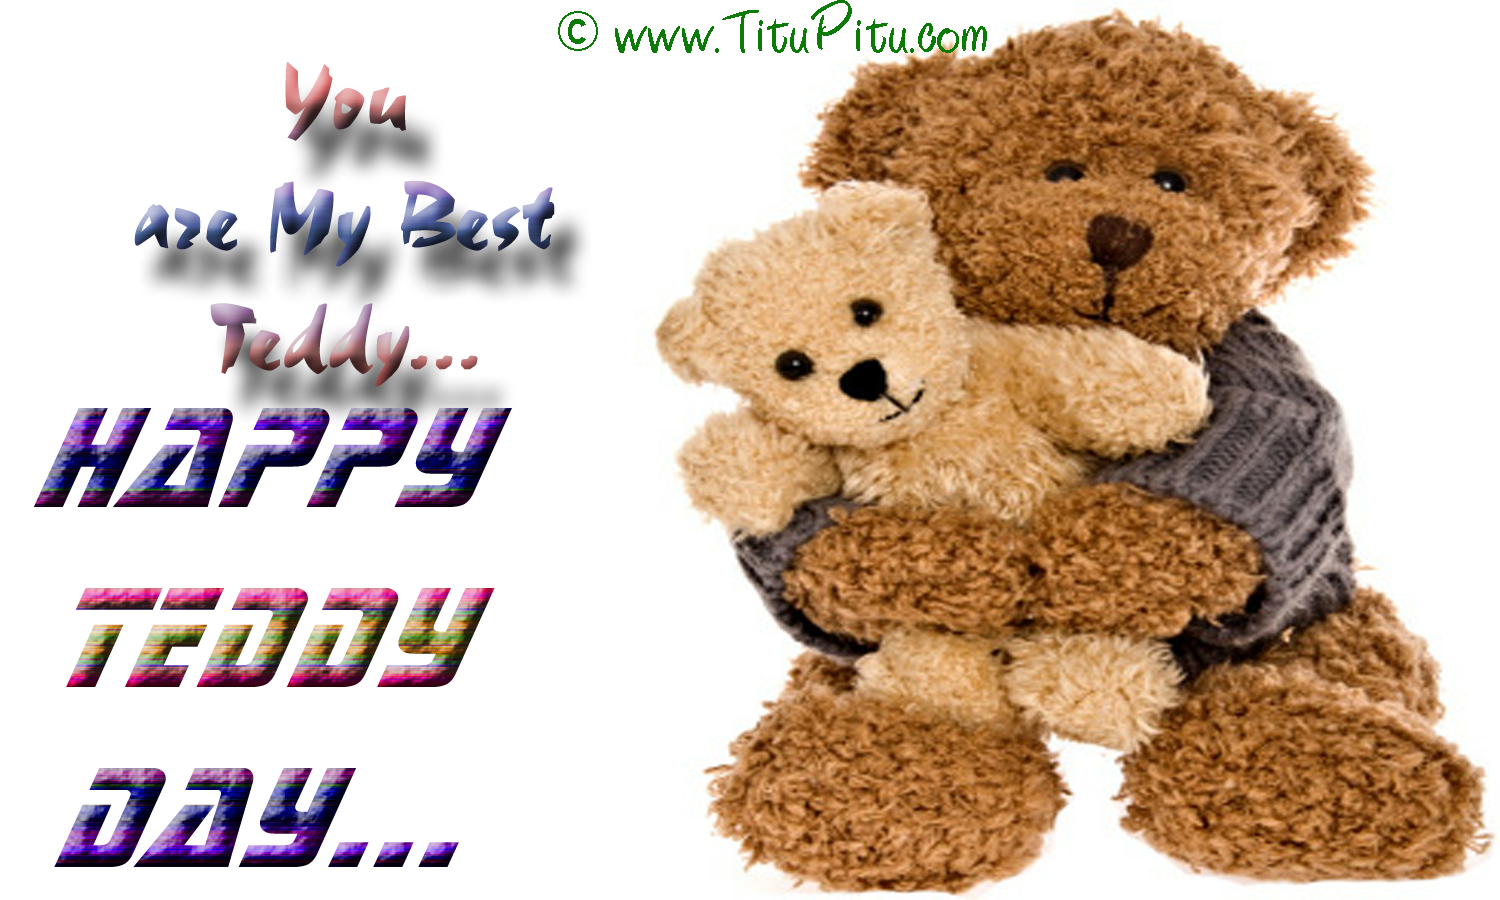 Happy-Teddy-day-wallpaper